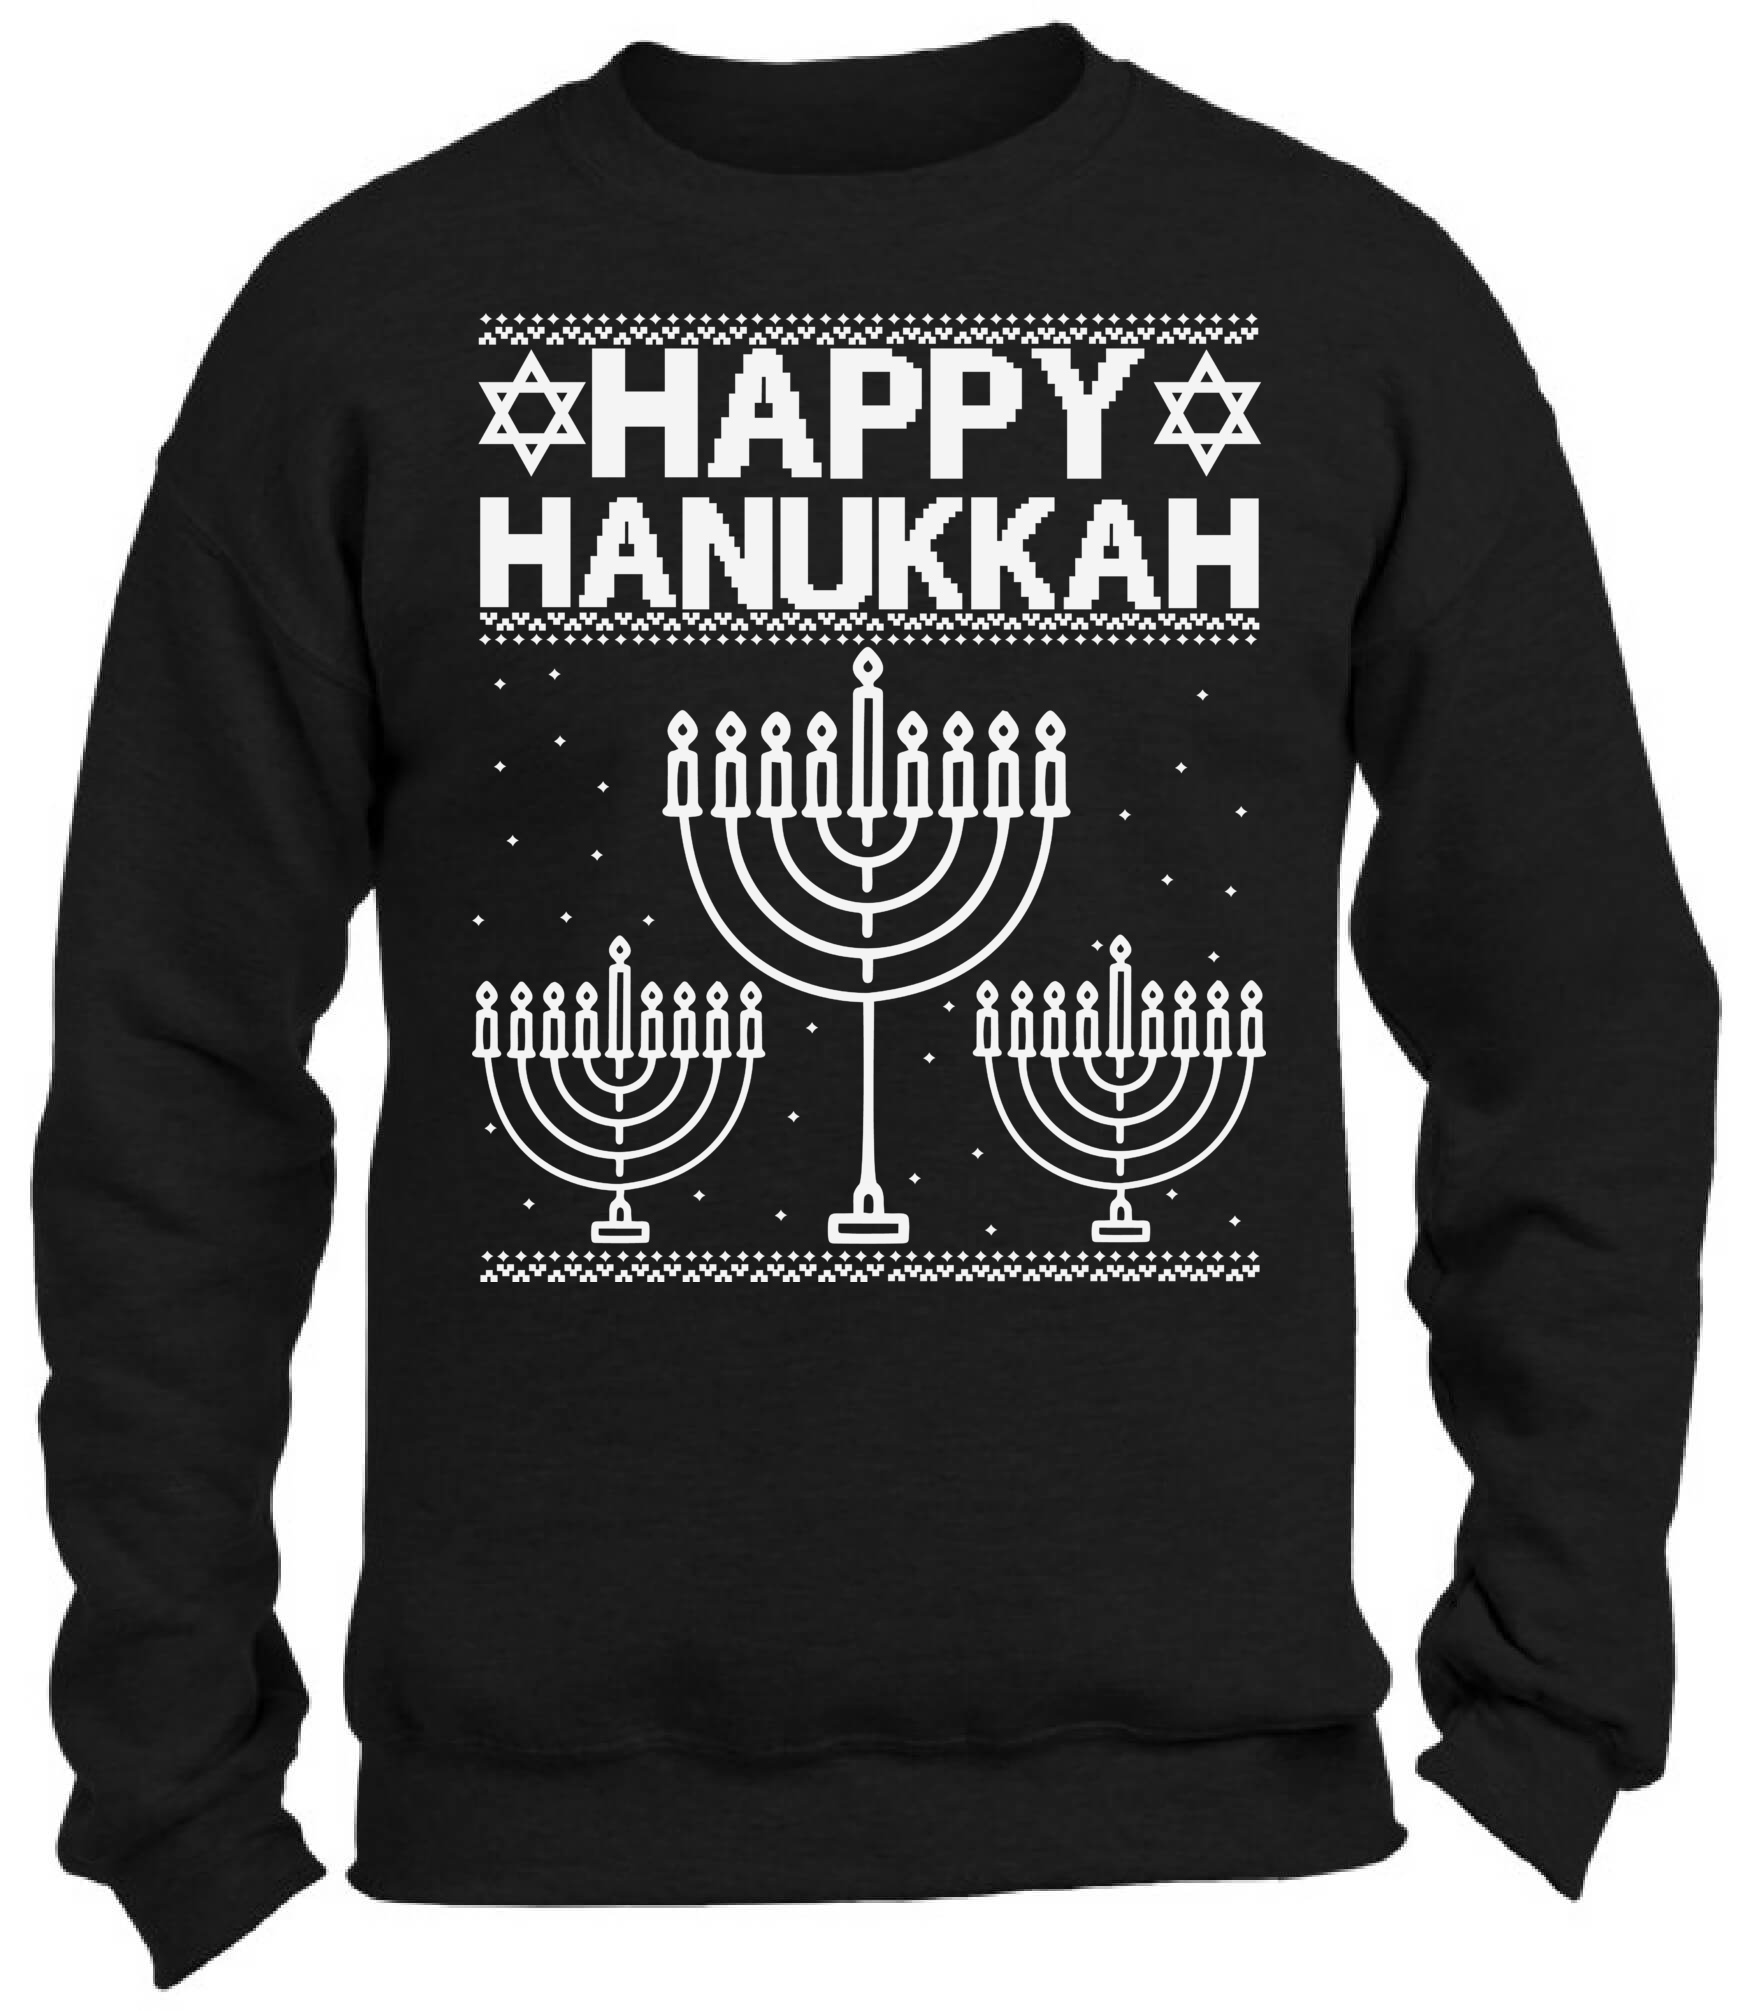 Happy Hanukkah Christmas Sweatshirt Jewish Ugly Christmas Sweater ...